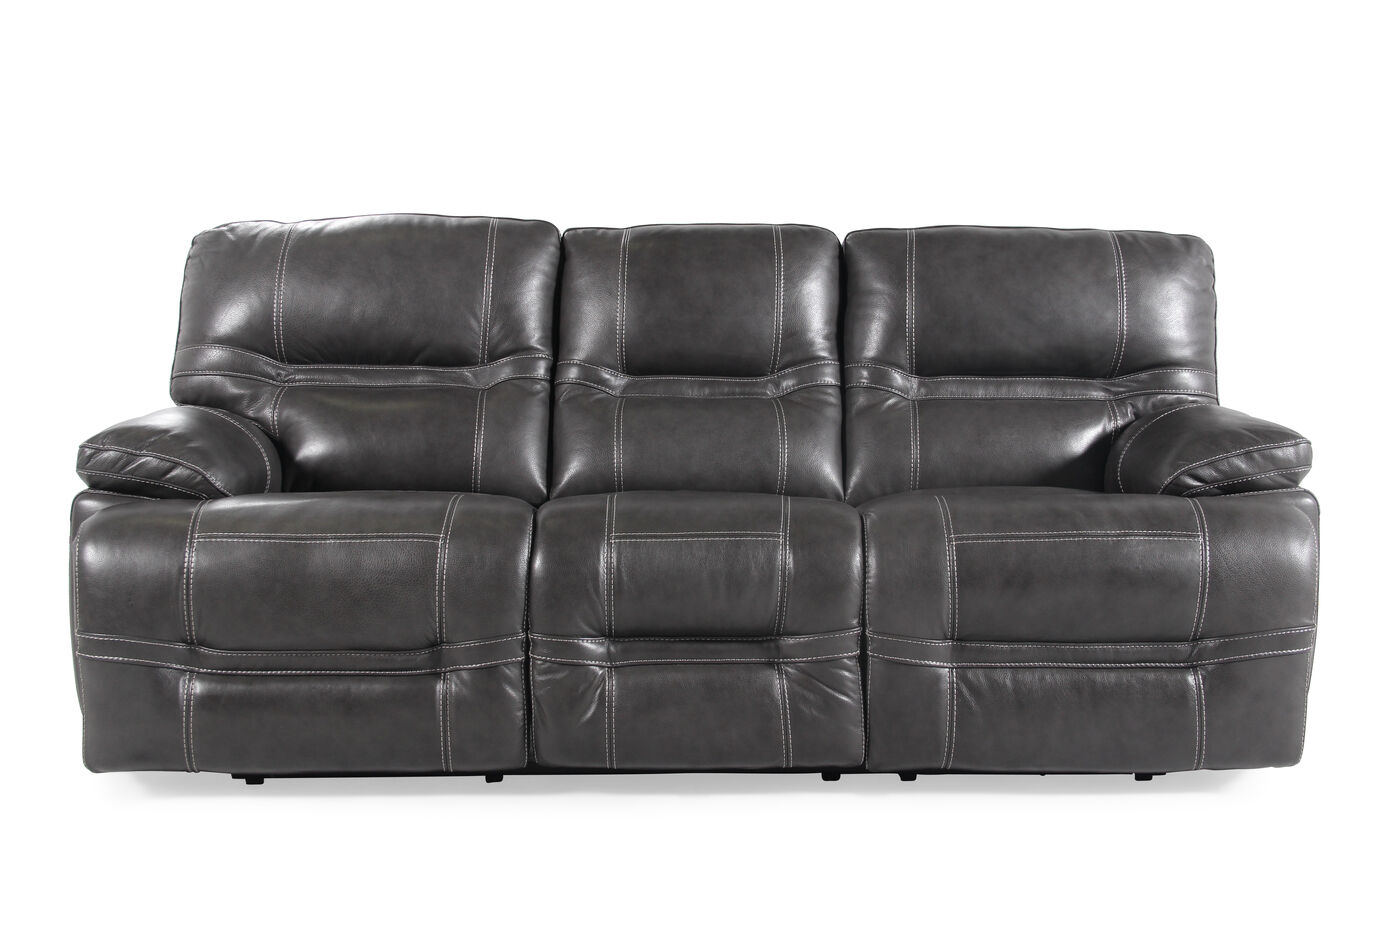 89 power reclining sofa in pewter mathis brothers furniture for Mathis brothers living room furniture